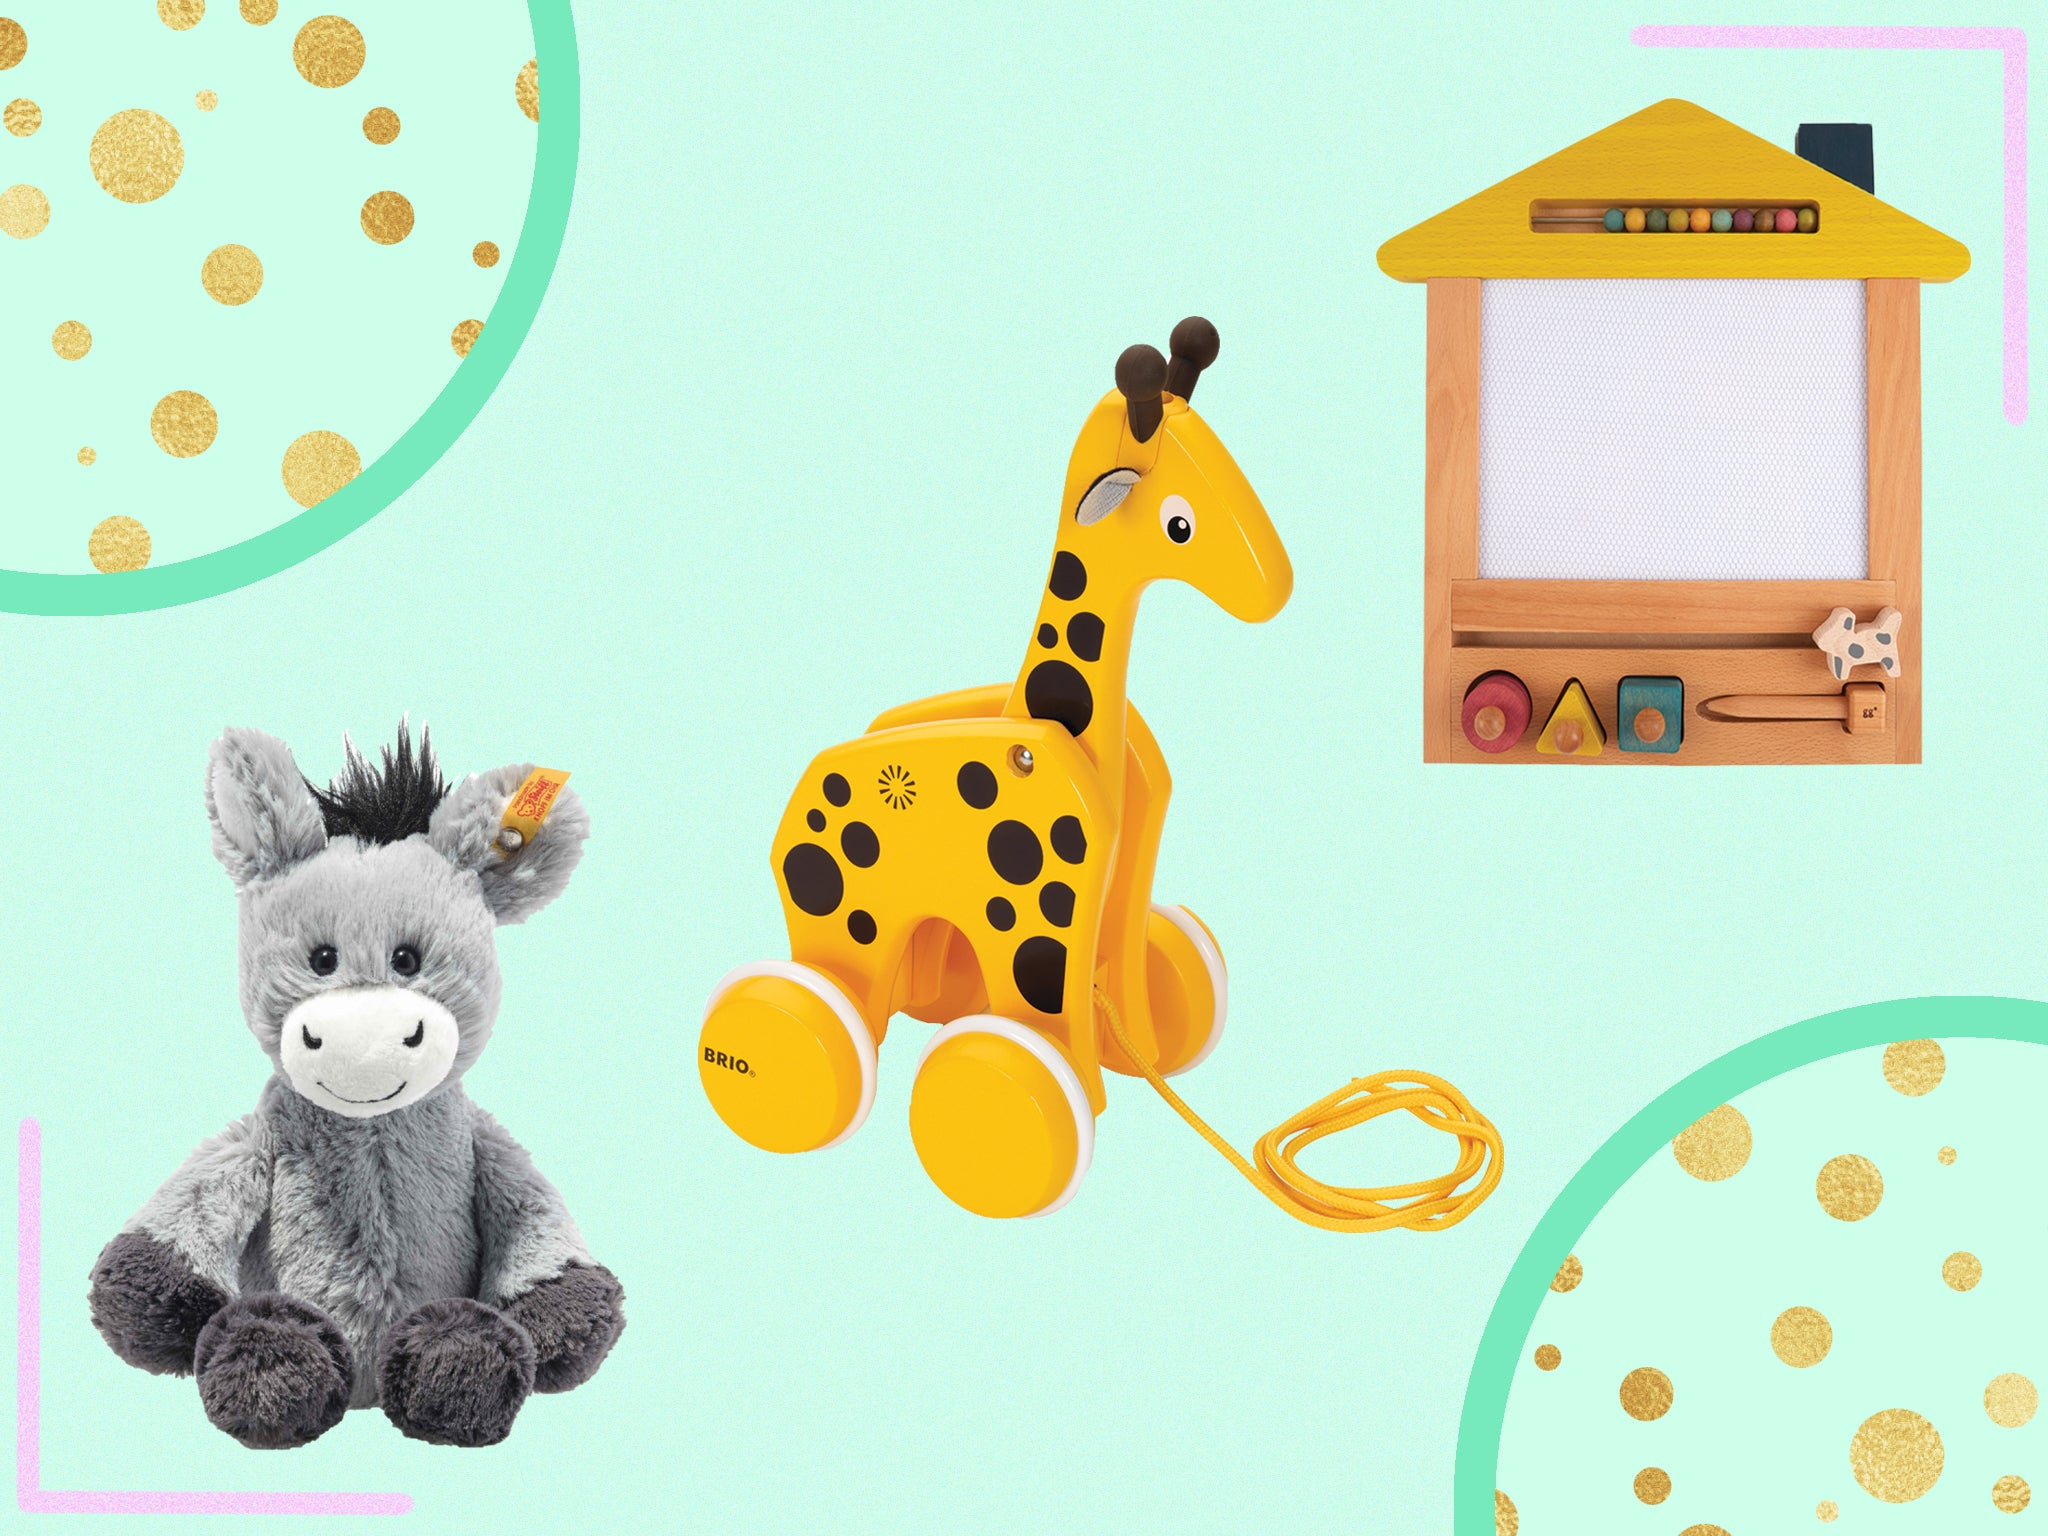 Best Gifts For 2 Year Olds 2020 That Are Fun And Encourage Learning The Independent